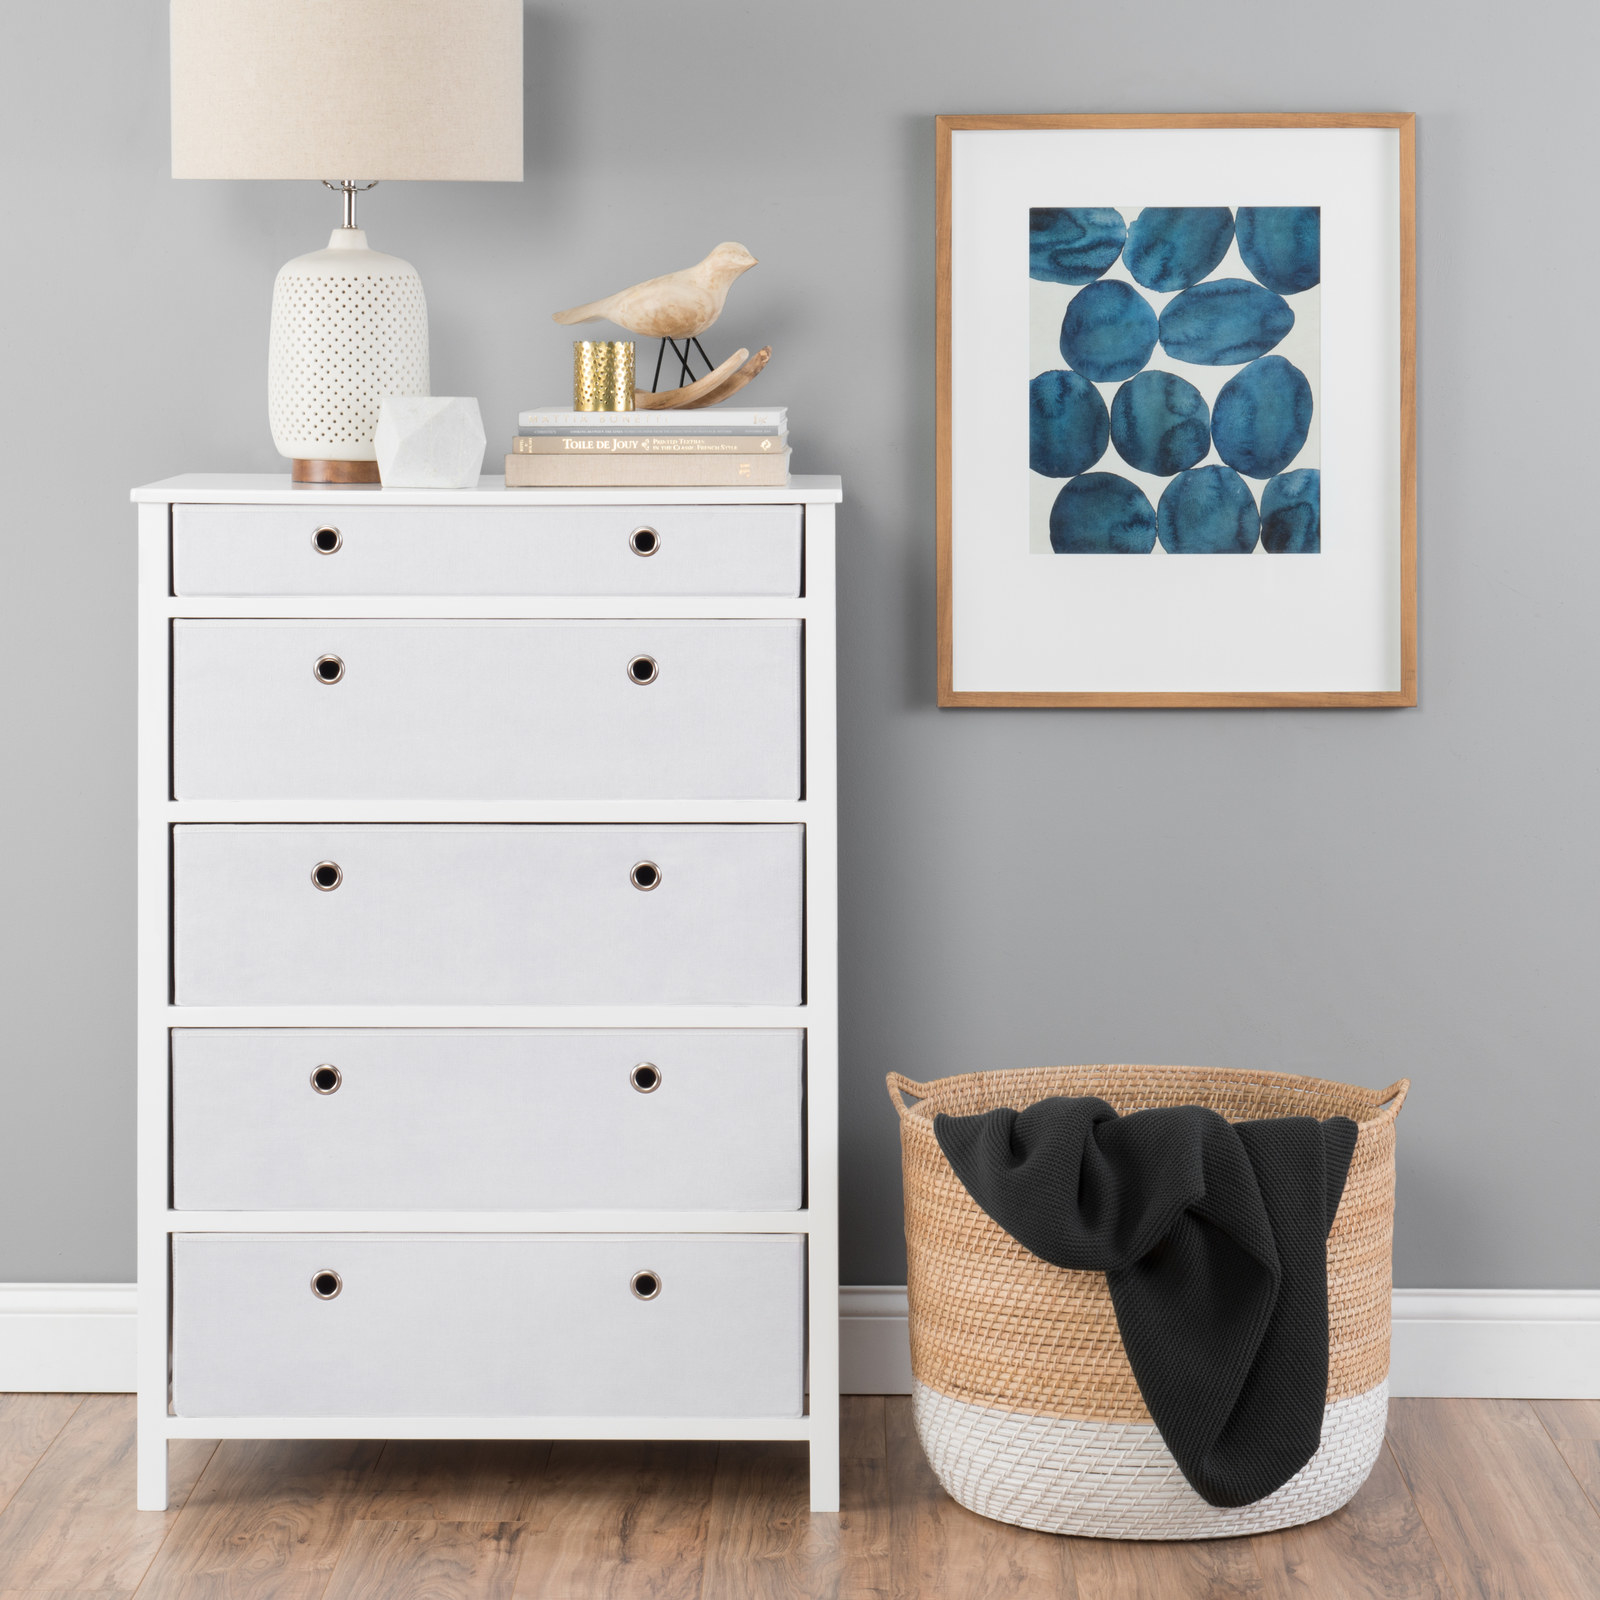 """Promising review: """"This dresser has a pretty neat design. It's foldable so it's easy to transport and I could easily fit it in my tiny two-door car to get it home. It's not all too heavy to carry upstairs either. I was mostly suspicious about the fabric dresser drawers because I thought they were going to be too flimsy, but they are actually quite substantial and I'm not concerned about them falling apart. Basically this is an easy dresser that looks really cute, too!"""" —BootsForBoopersPrice: $166.25+ (available in two colors)"""